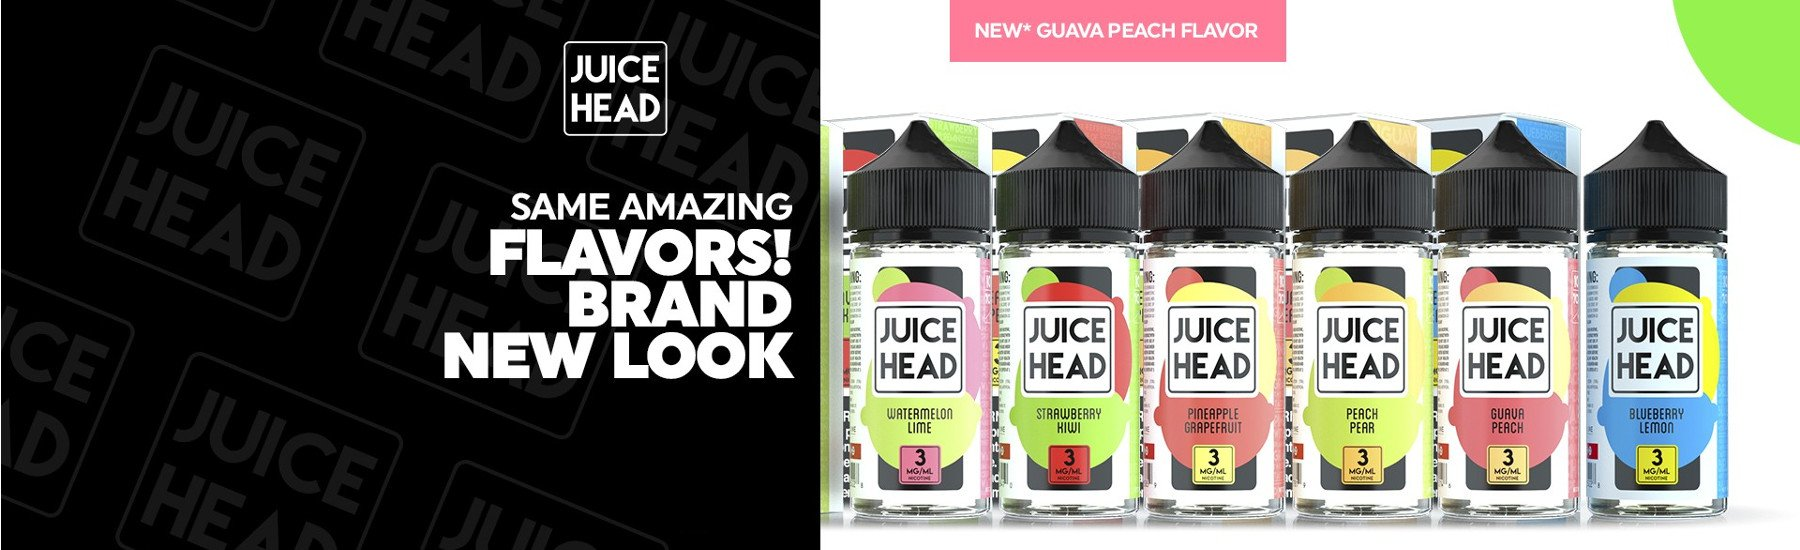 juice head, blueberry lemon, guava peach, eliquid